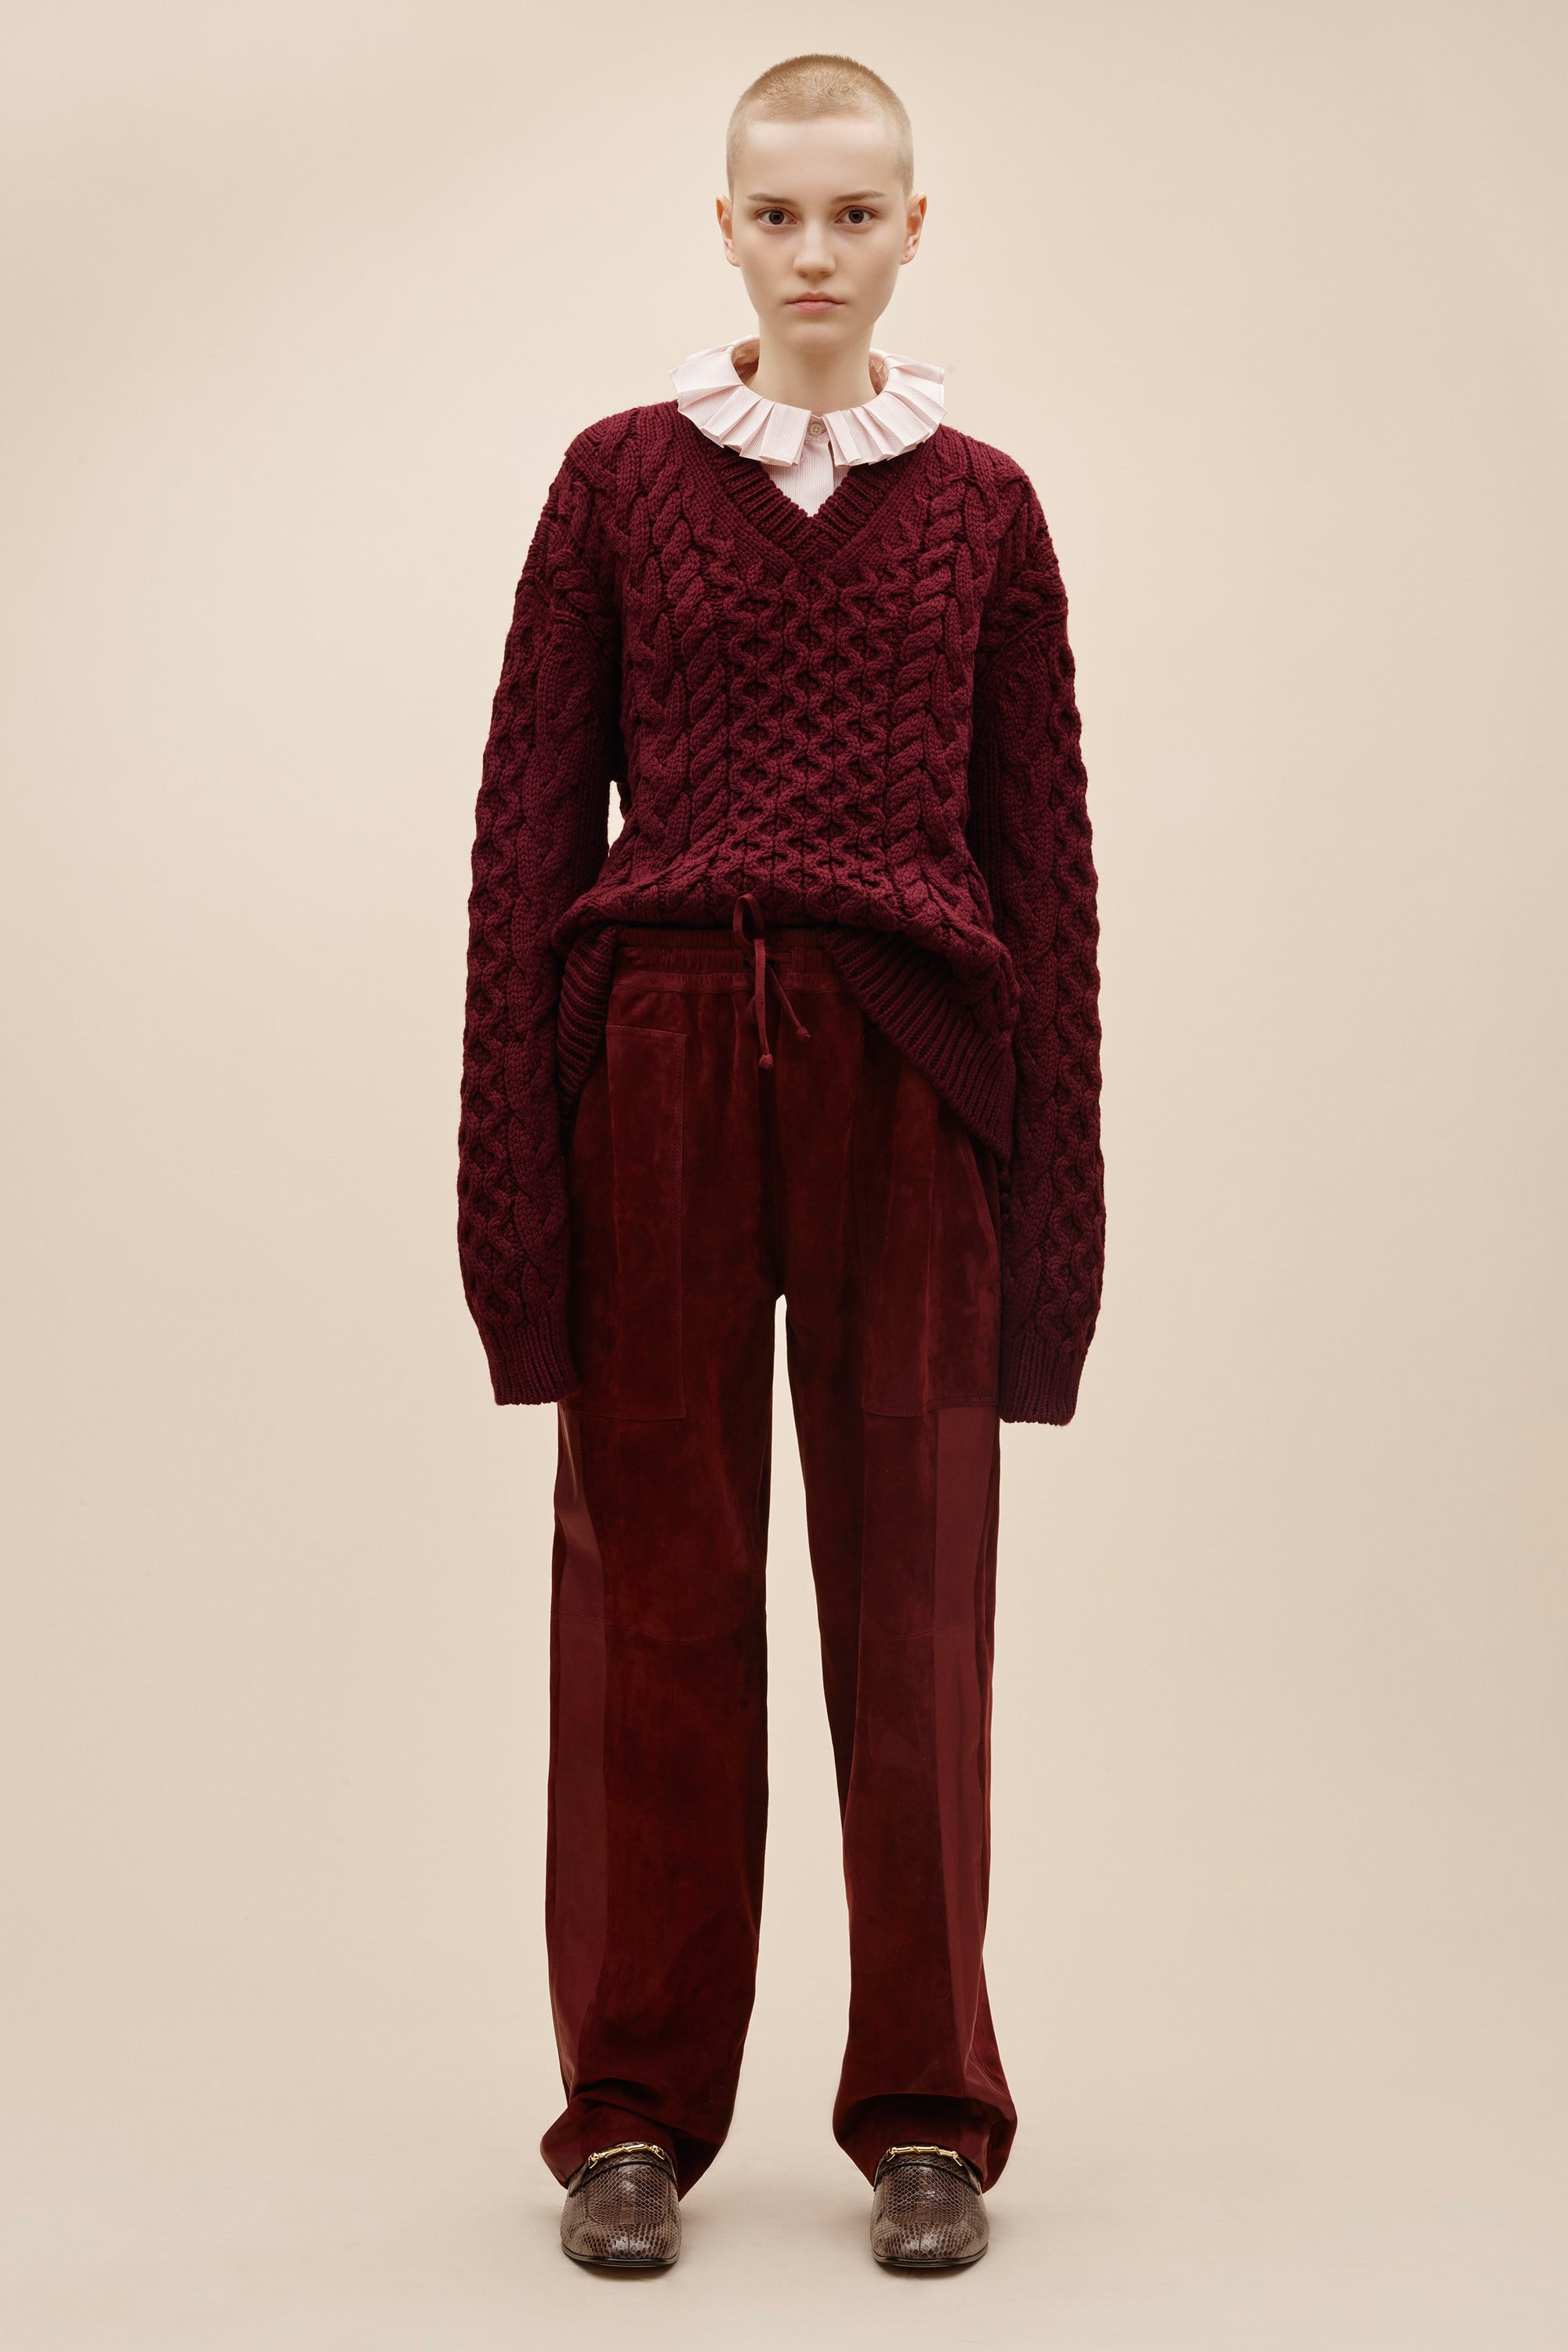 joseph-pre-fall-2016-lookbook-24.jpg